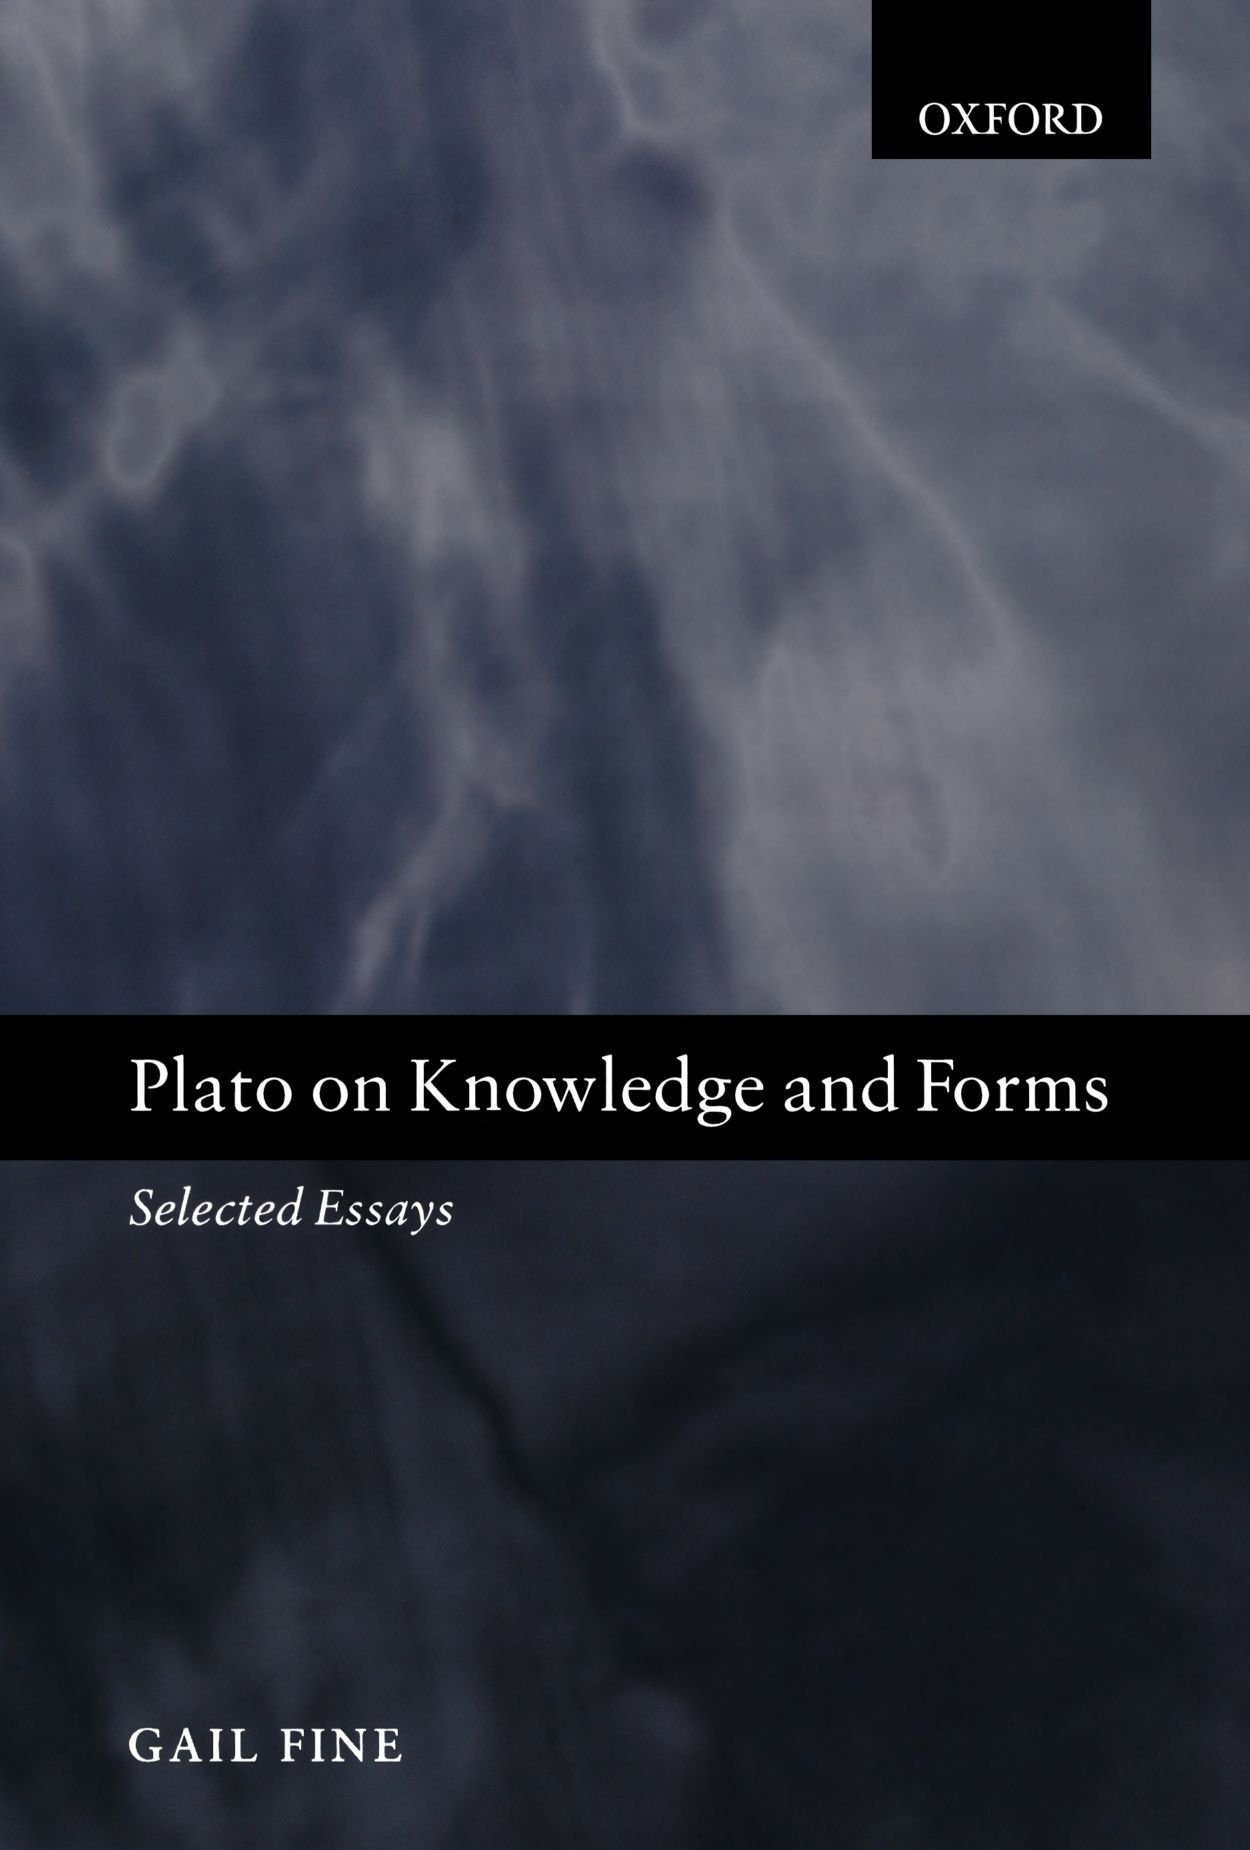 plato on knowledge and forms selected essays amazon co uk gail plato on knowledge and forms selected essays amazon co uk gail fine 9780199245598 books